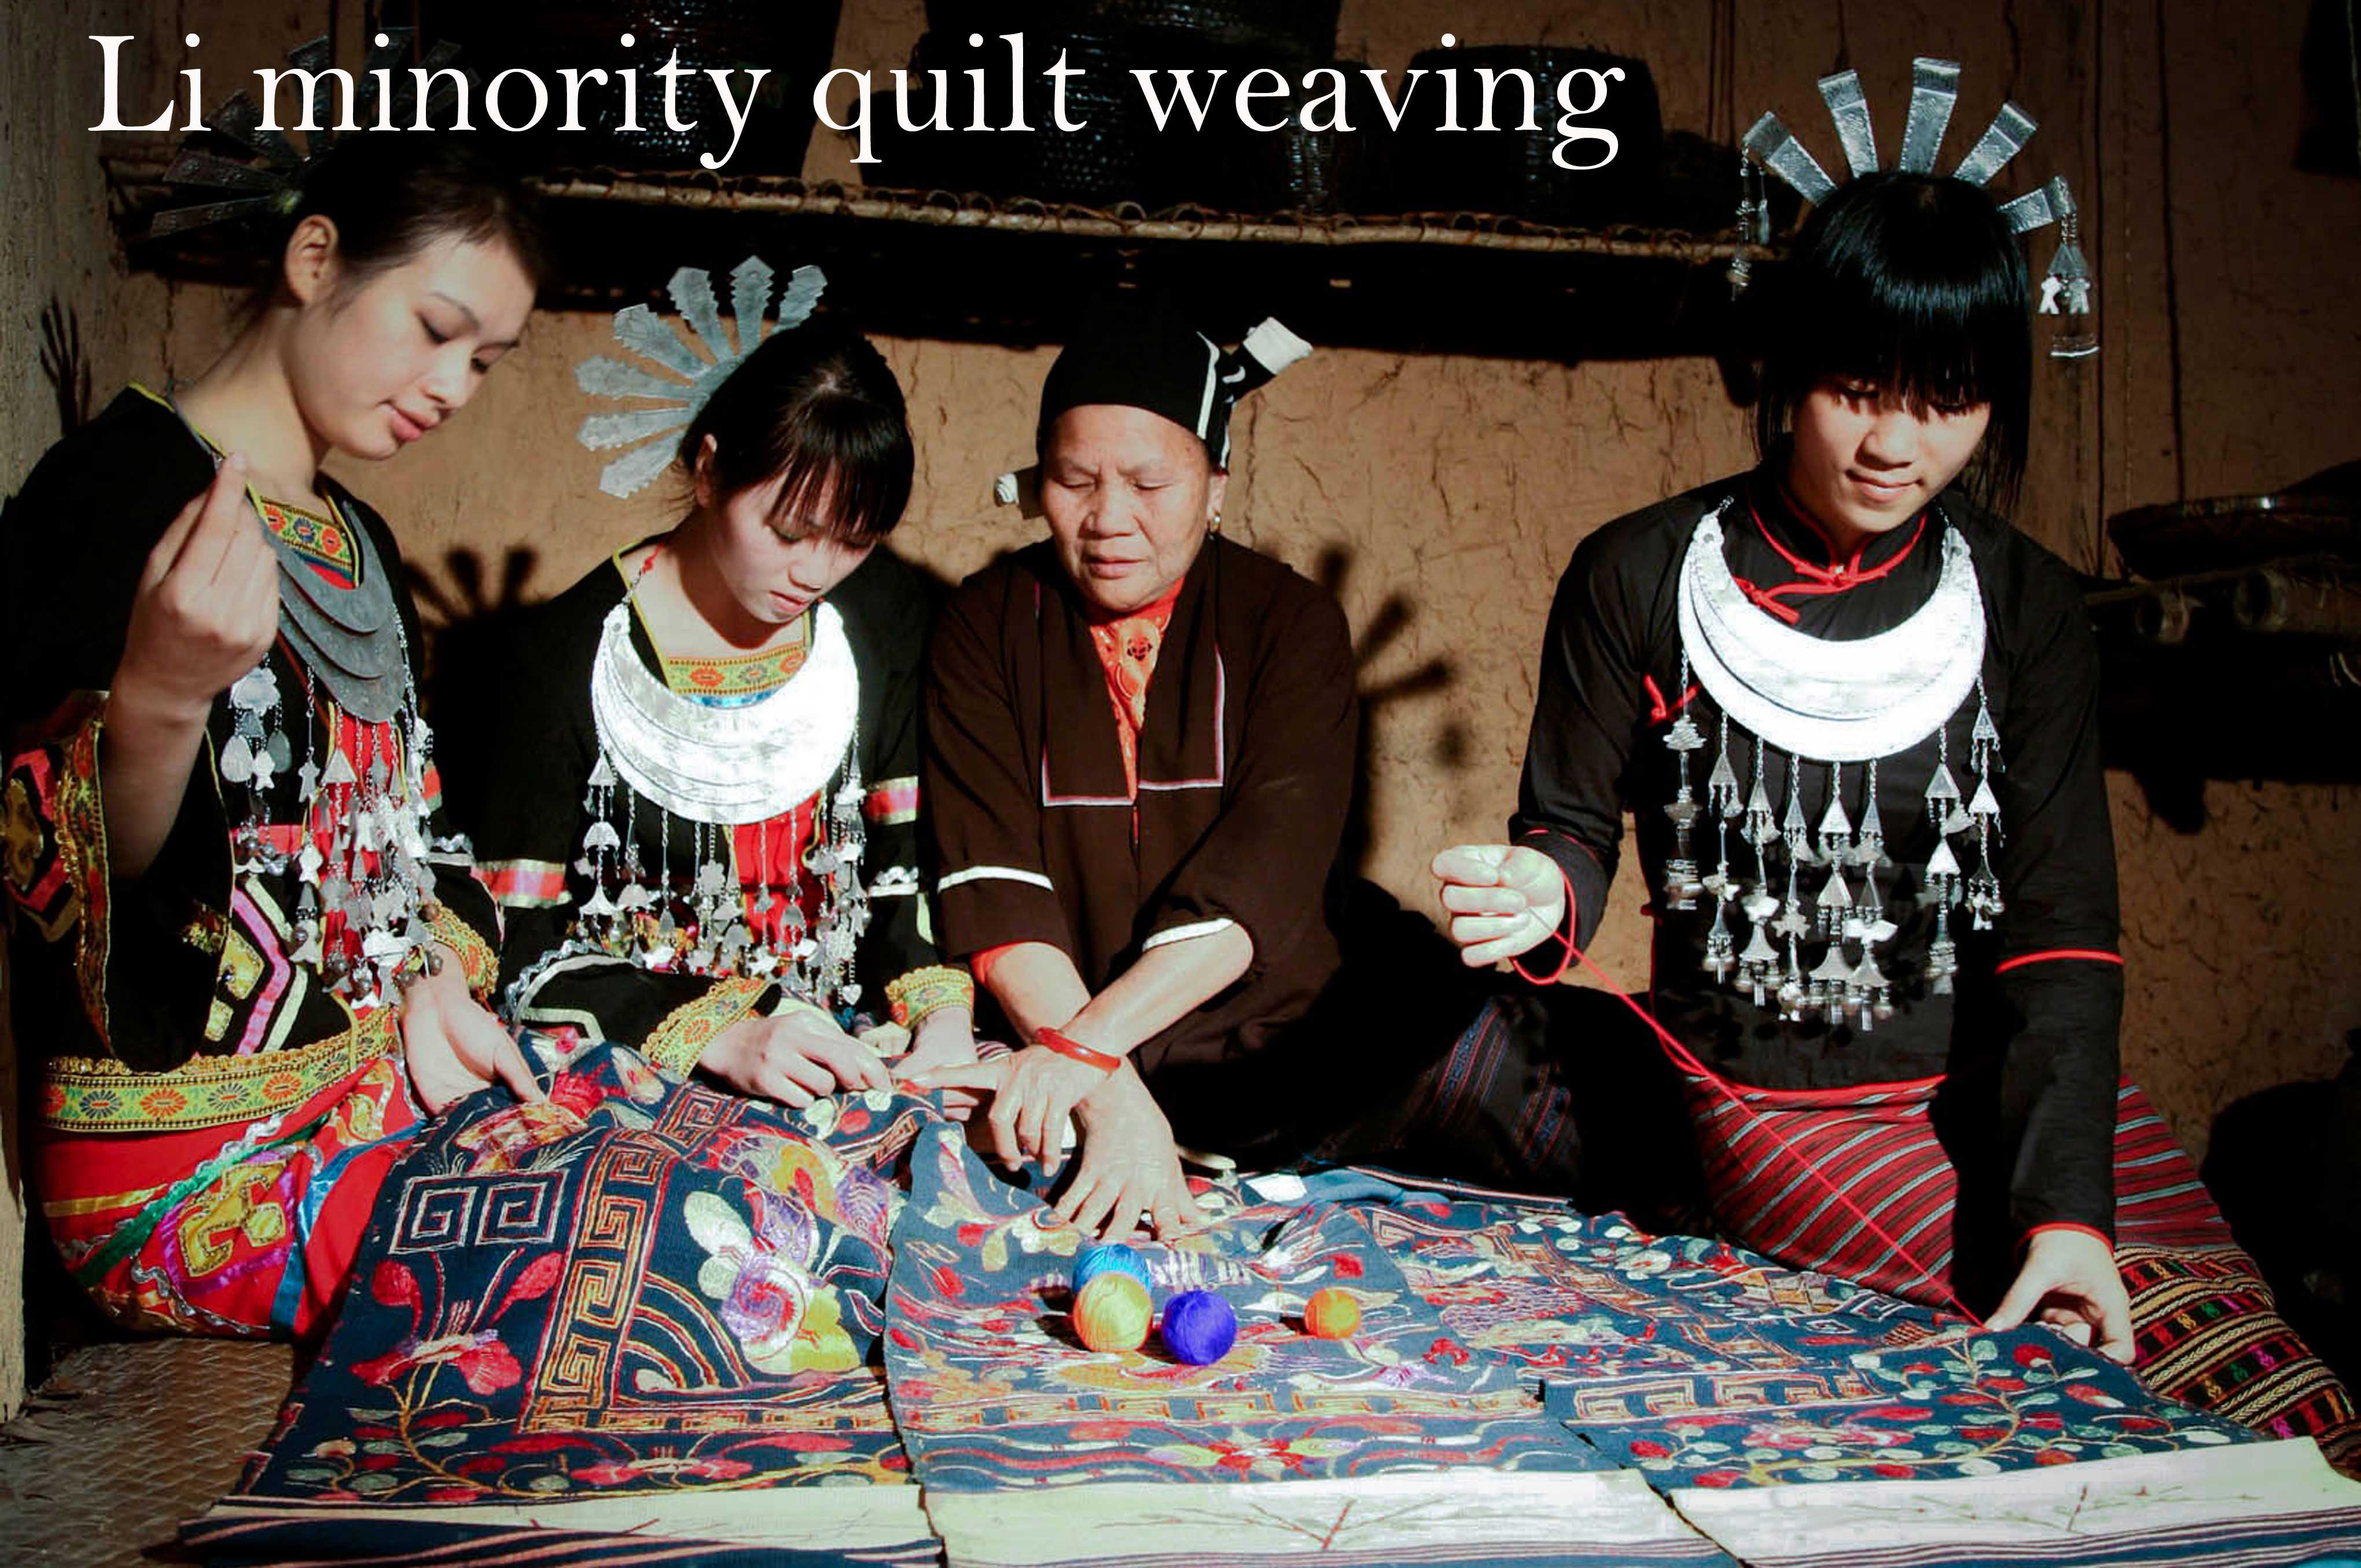 Li minority quilt weaving